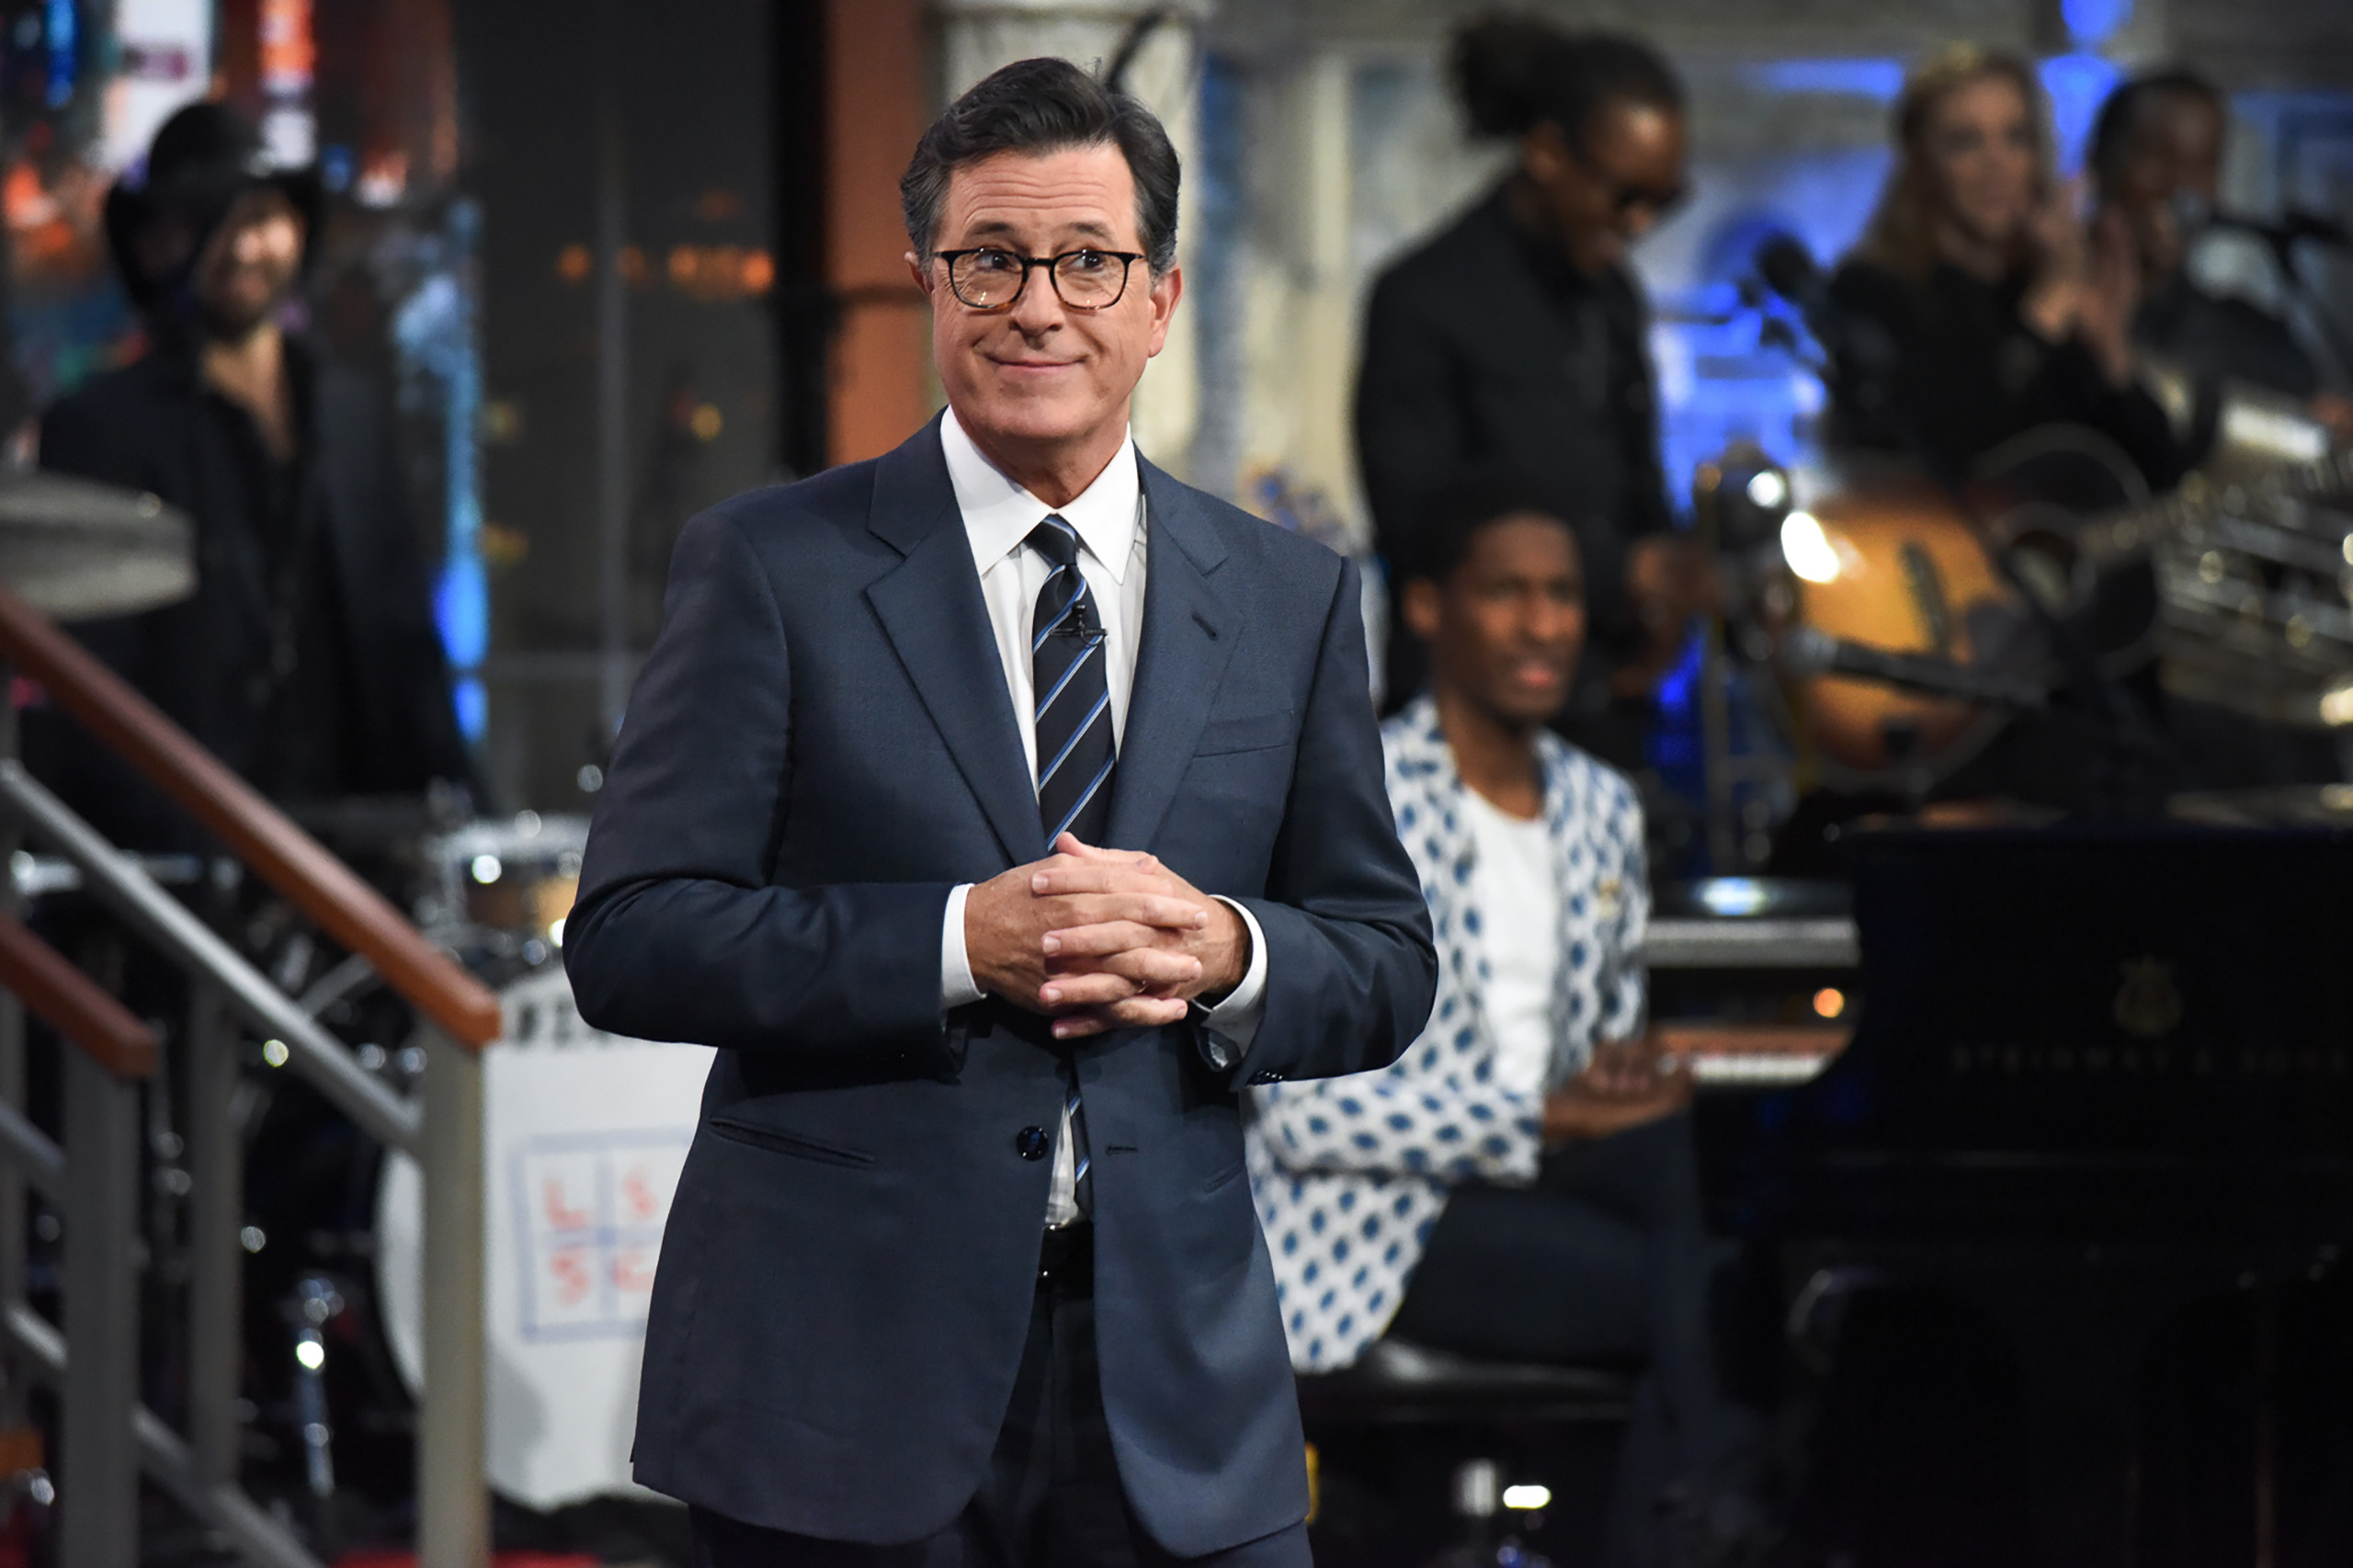 Stephen Colbert on The Late Show with Stephen Colbert during the July 20, 2017 show.